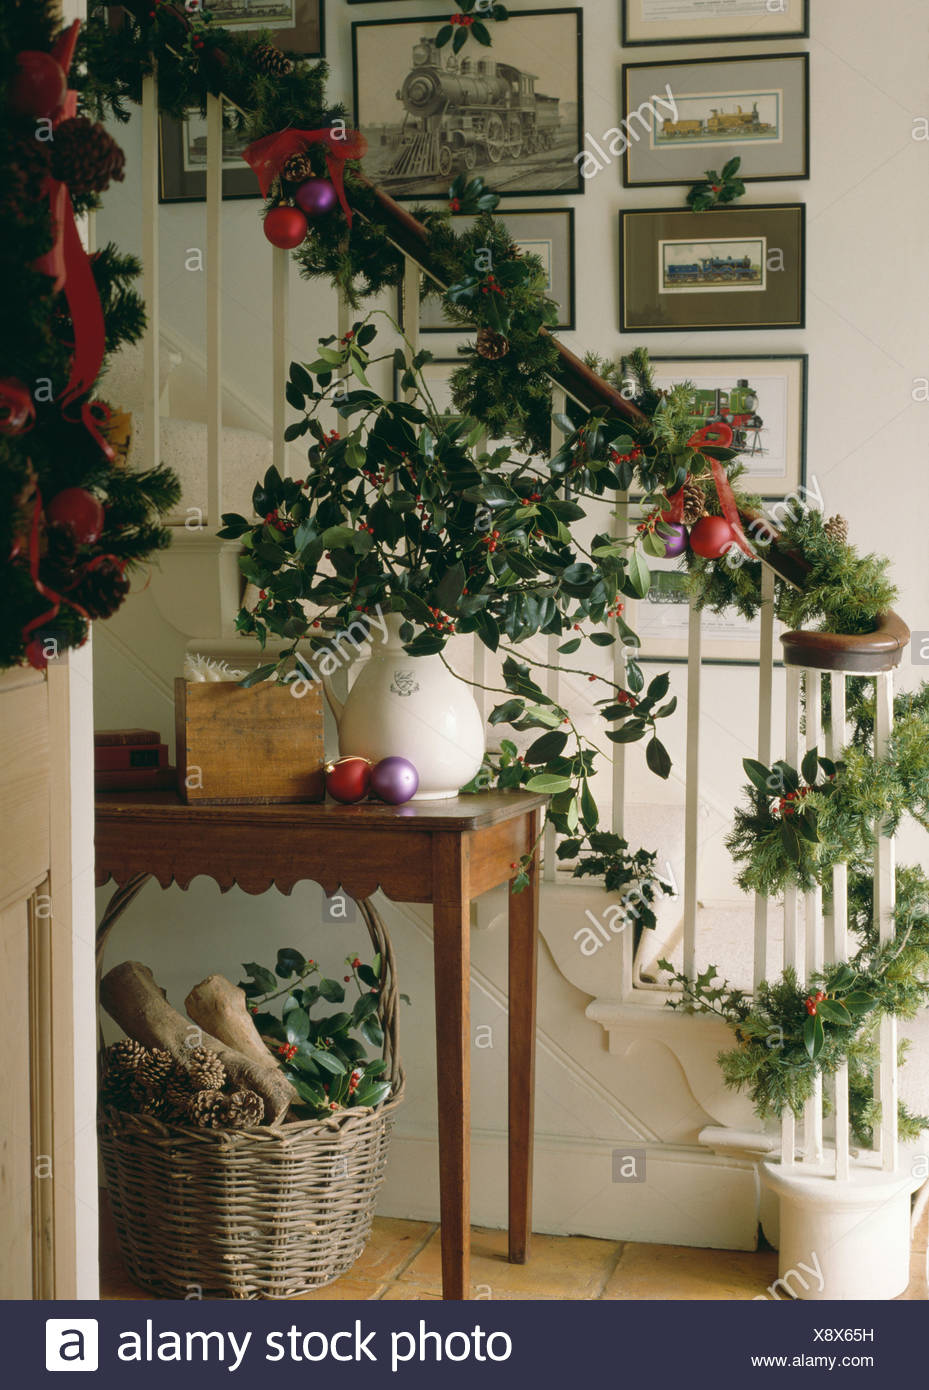 Garlands Of Holly And Ivy With Conifer Branches Decorating Staircase At Christmas Jug On Hall Table